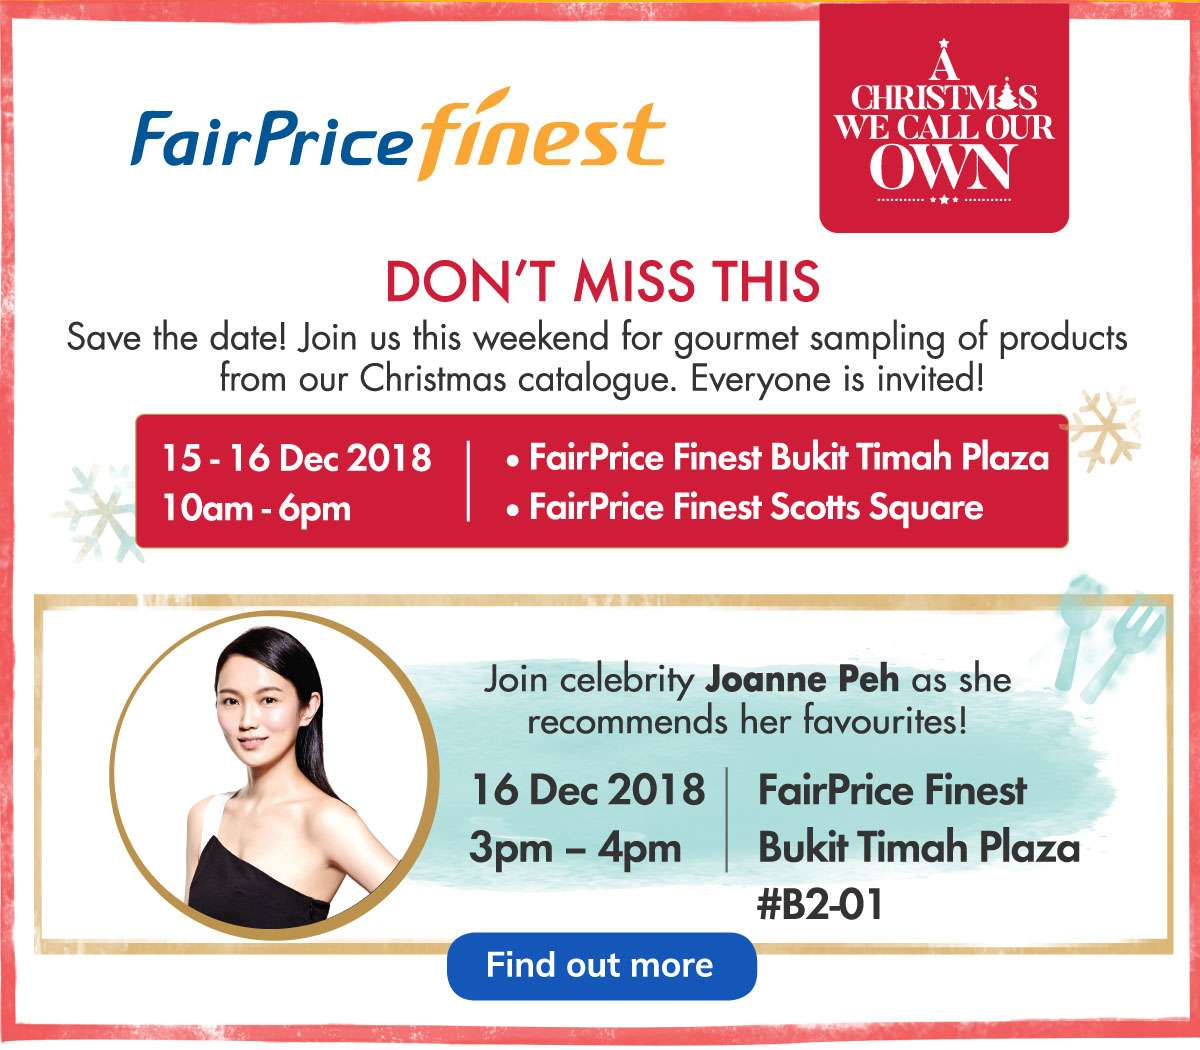 Catch Joanne Peh at FairPrice Finest!